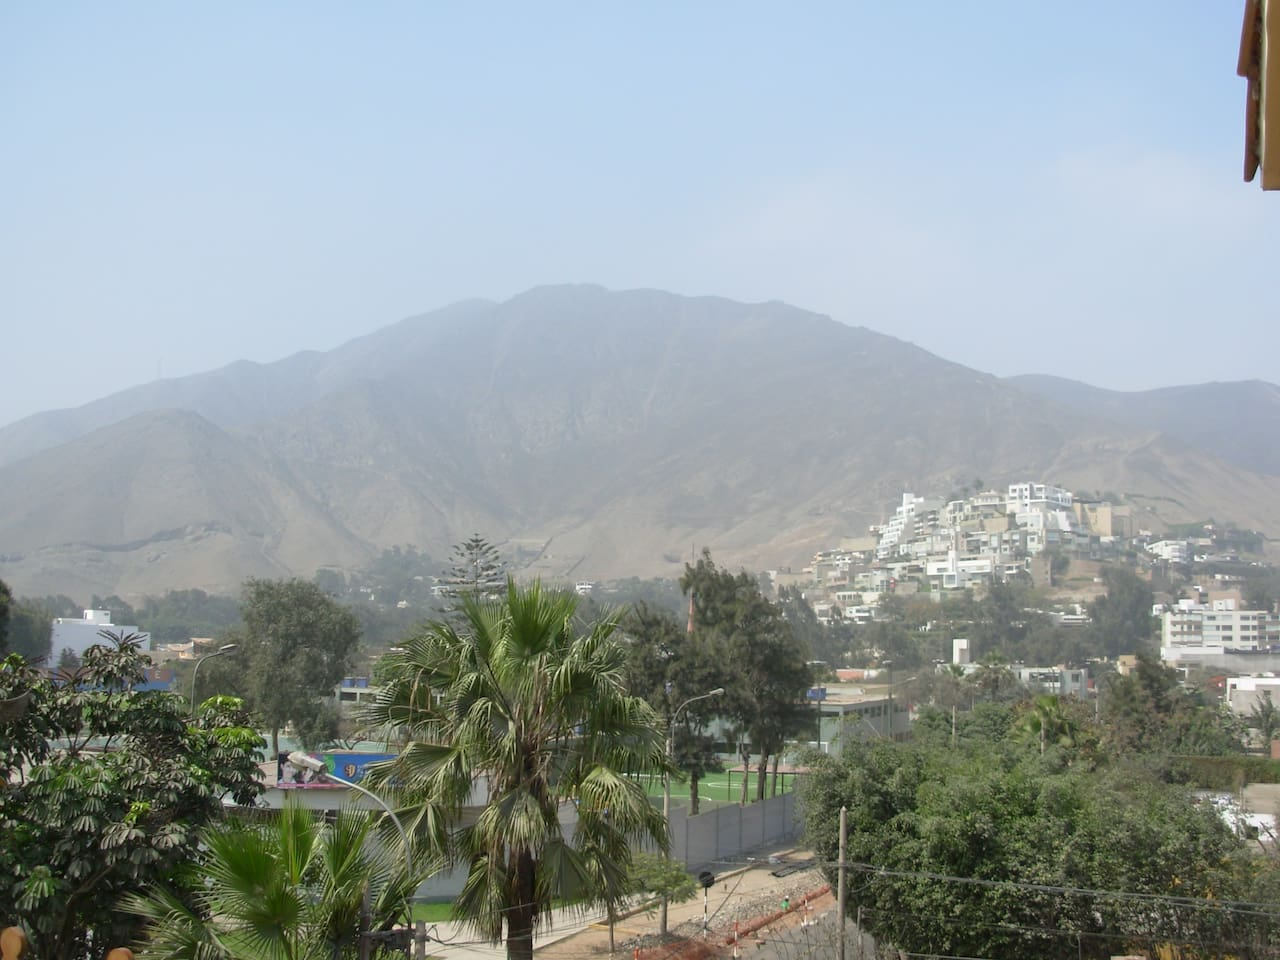 View from the balcony and one block away to the Peruvian Gold Museum